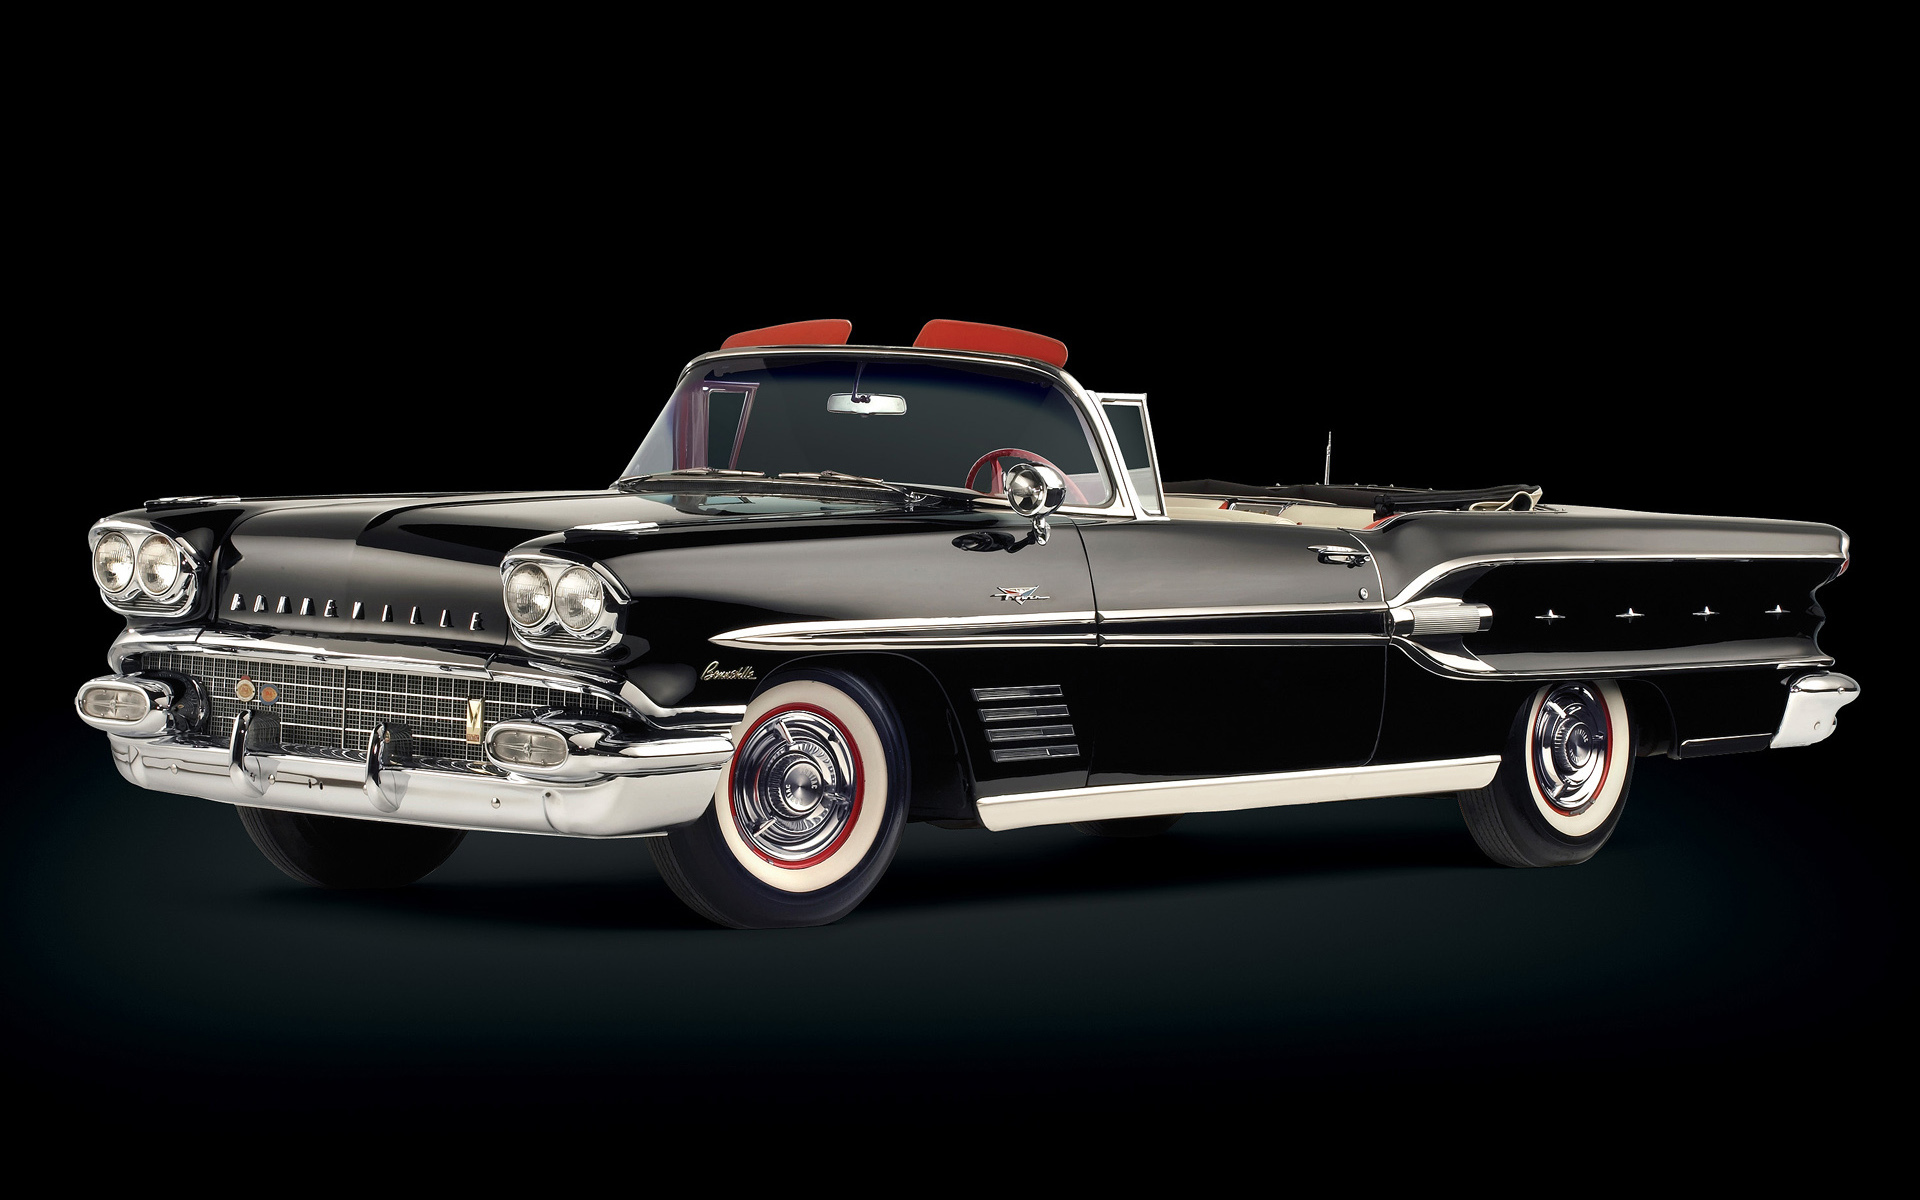 Classic Old Car Wallpapers 1600x900 1 1958 Pontiac Bonneville Hd Wallpapers Background